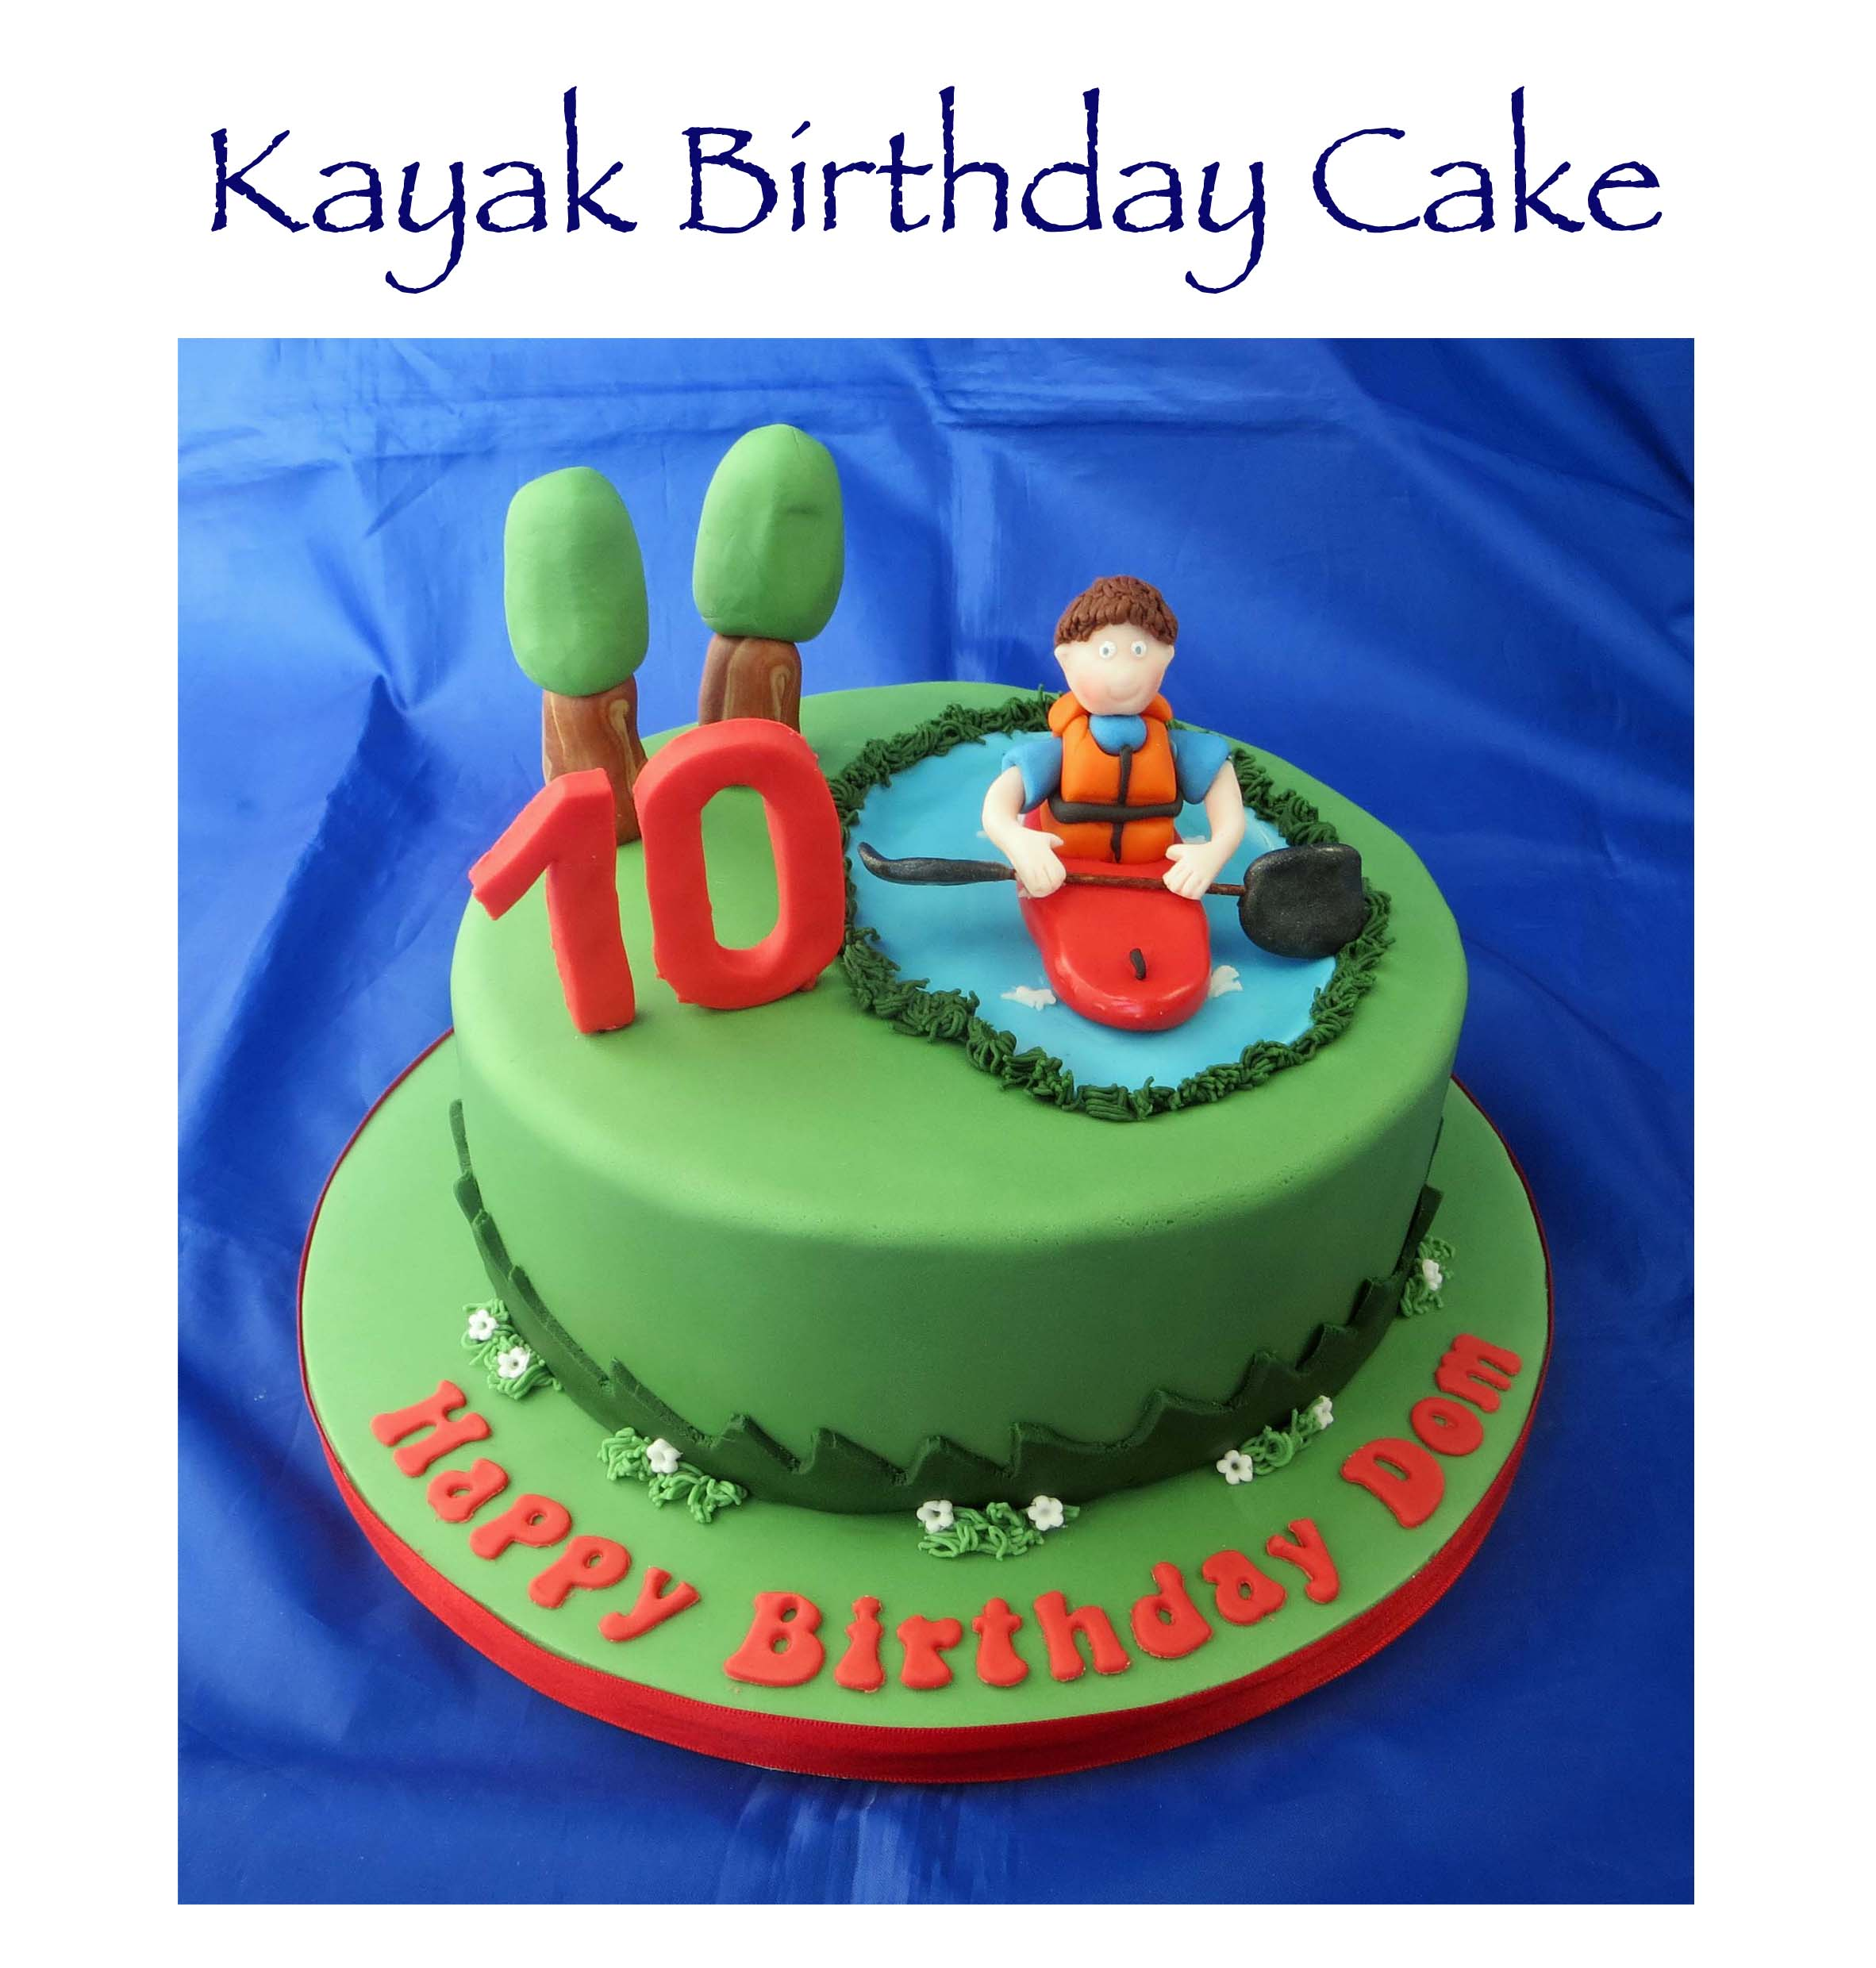 Kayak Birthday Cake